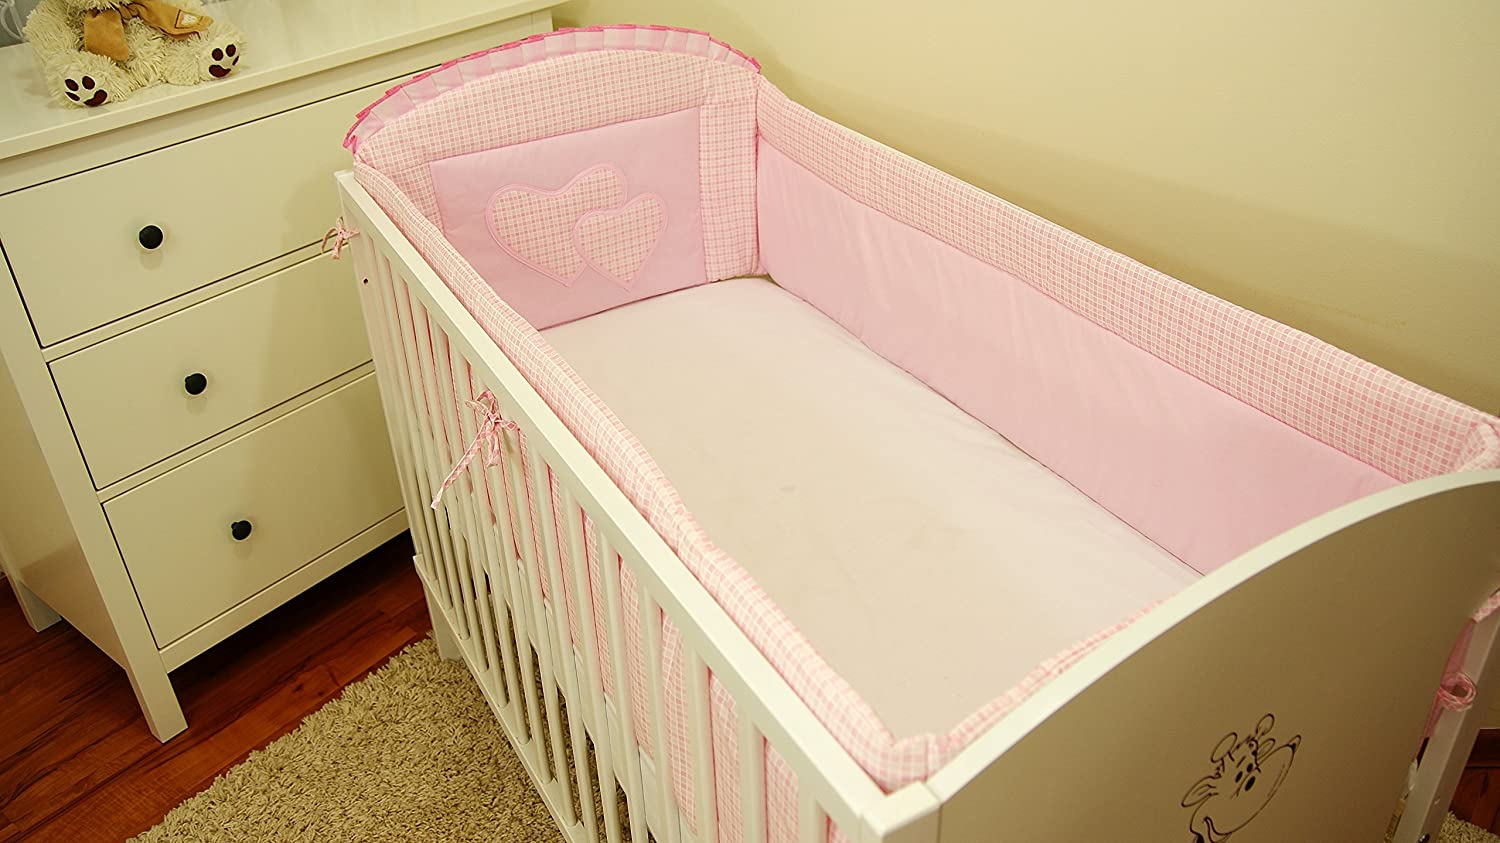 Cot bumper with Applique and Falbel Cot Bedding Cot Bumper with 420  cm Aluxshop